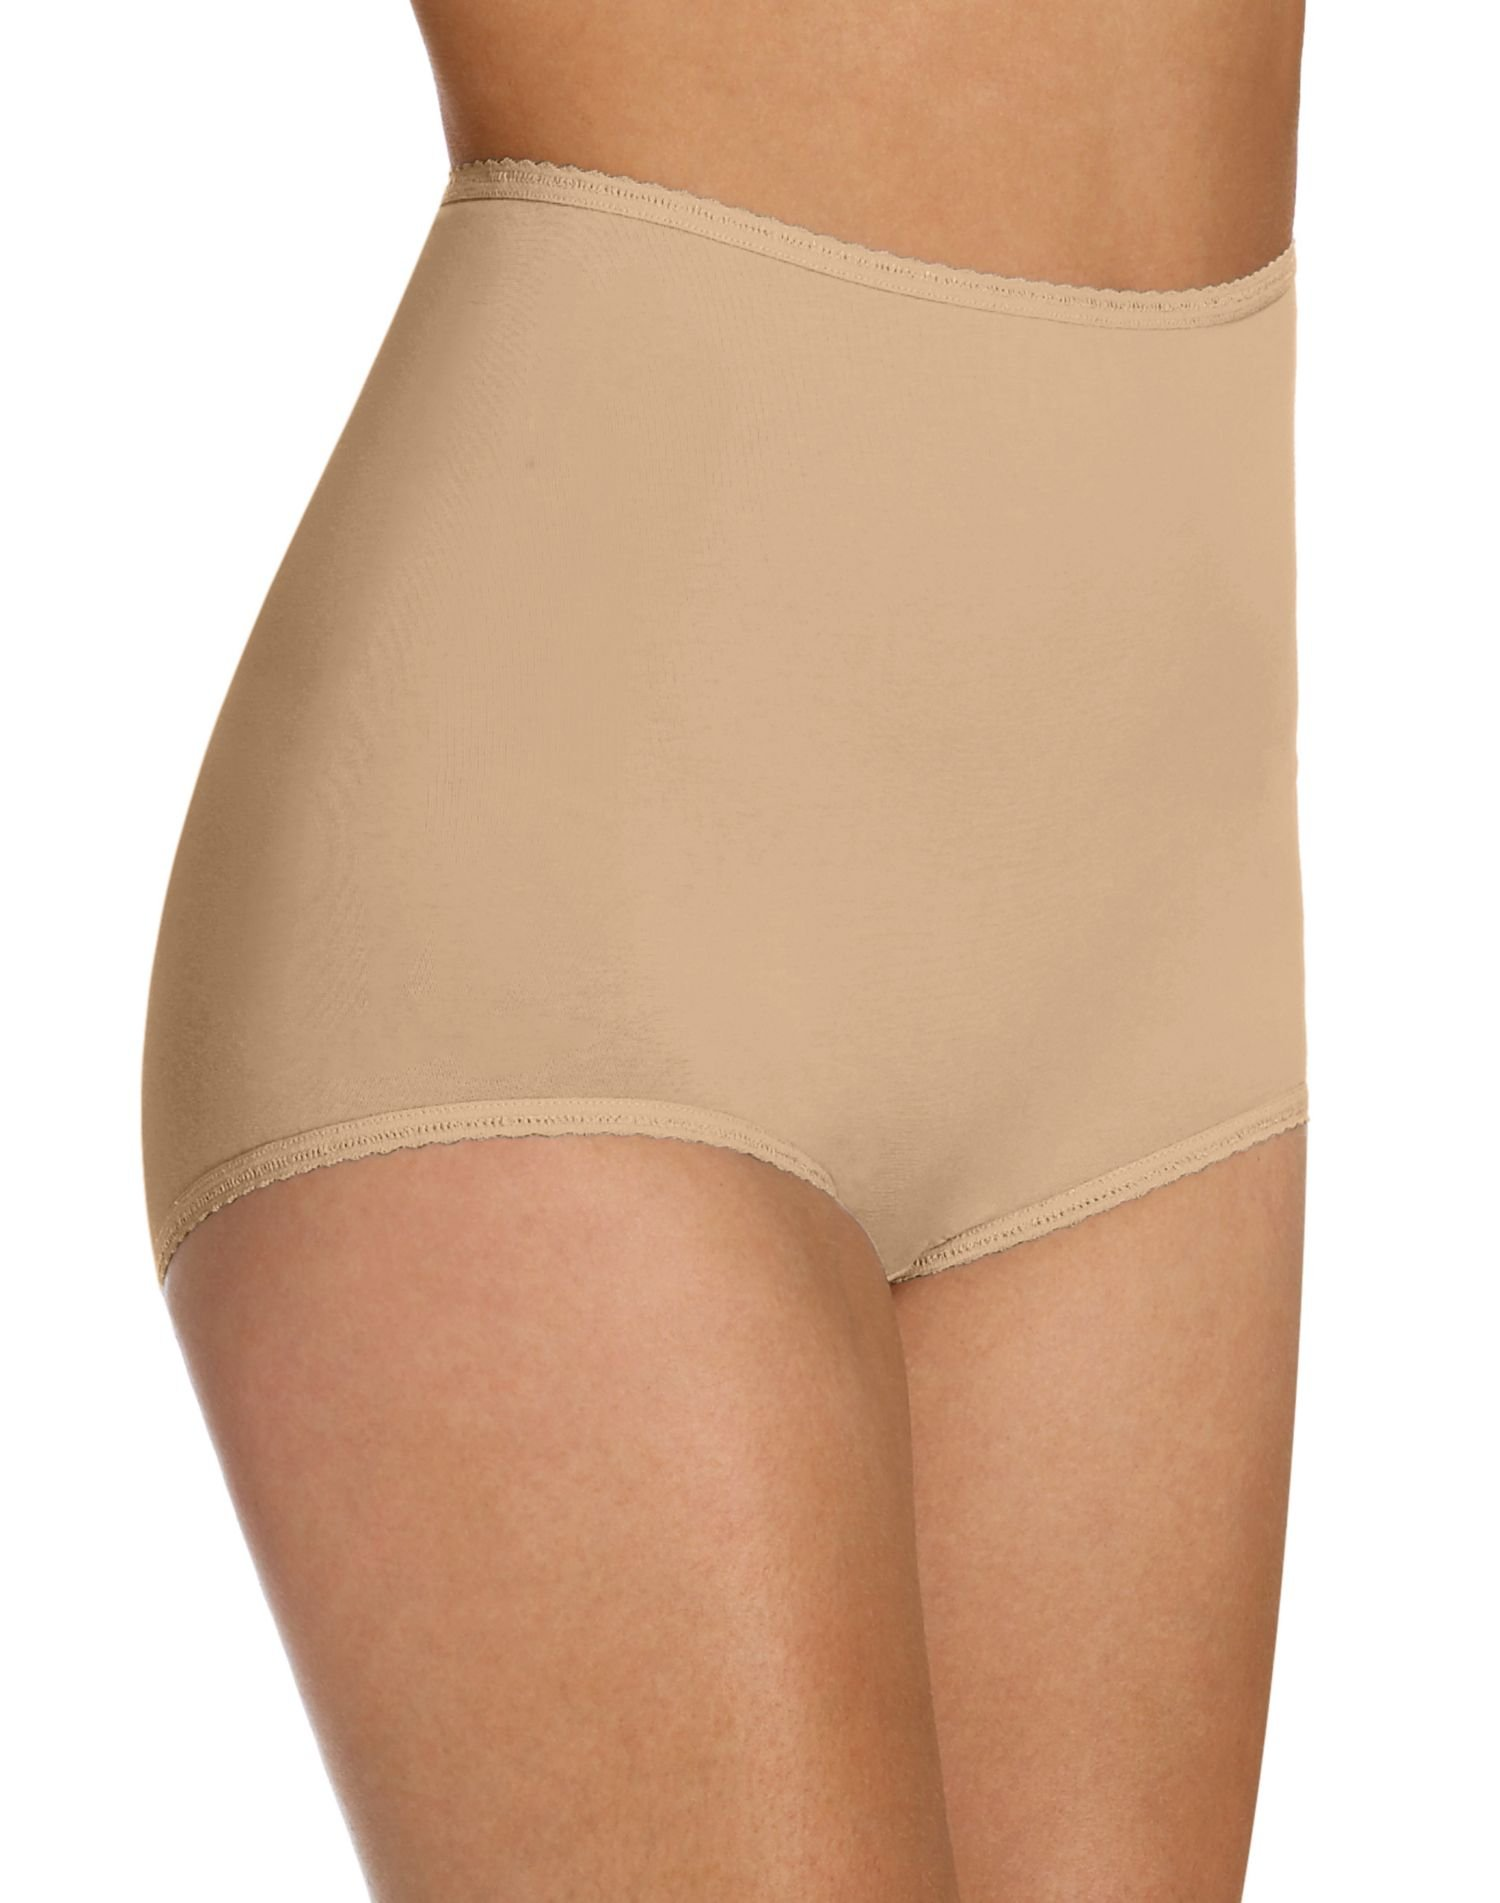 Bali Women`s Set of 6 Cool Cotton Skimp Skamp Brief - Best-Seller! 7, Nude